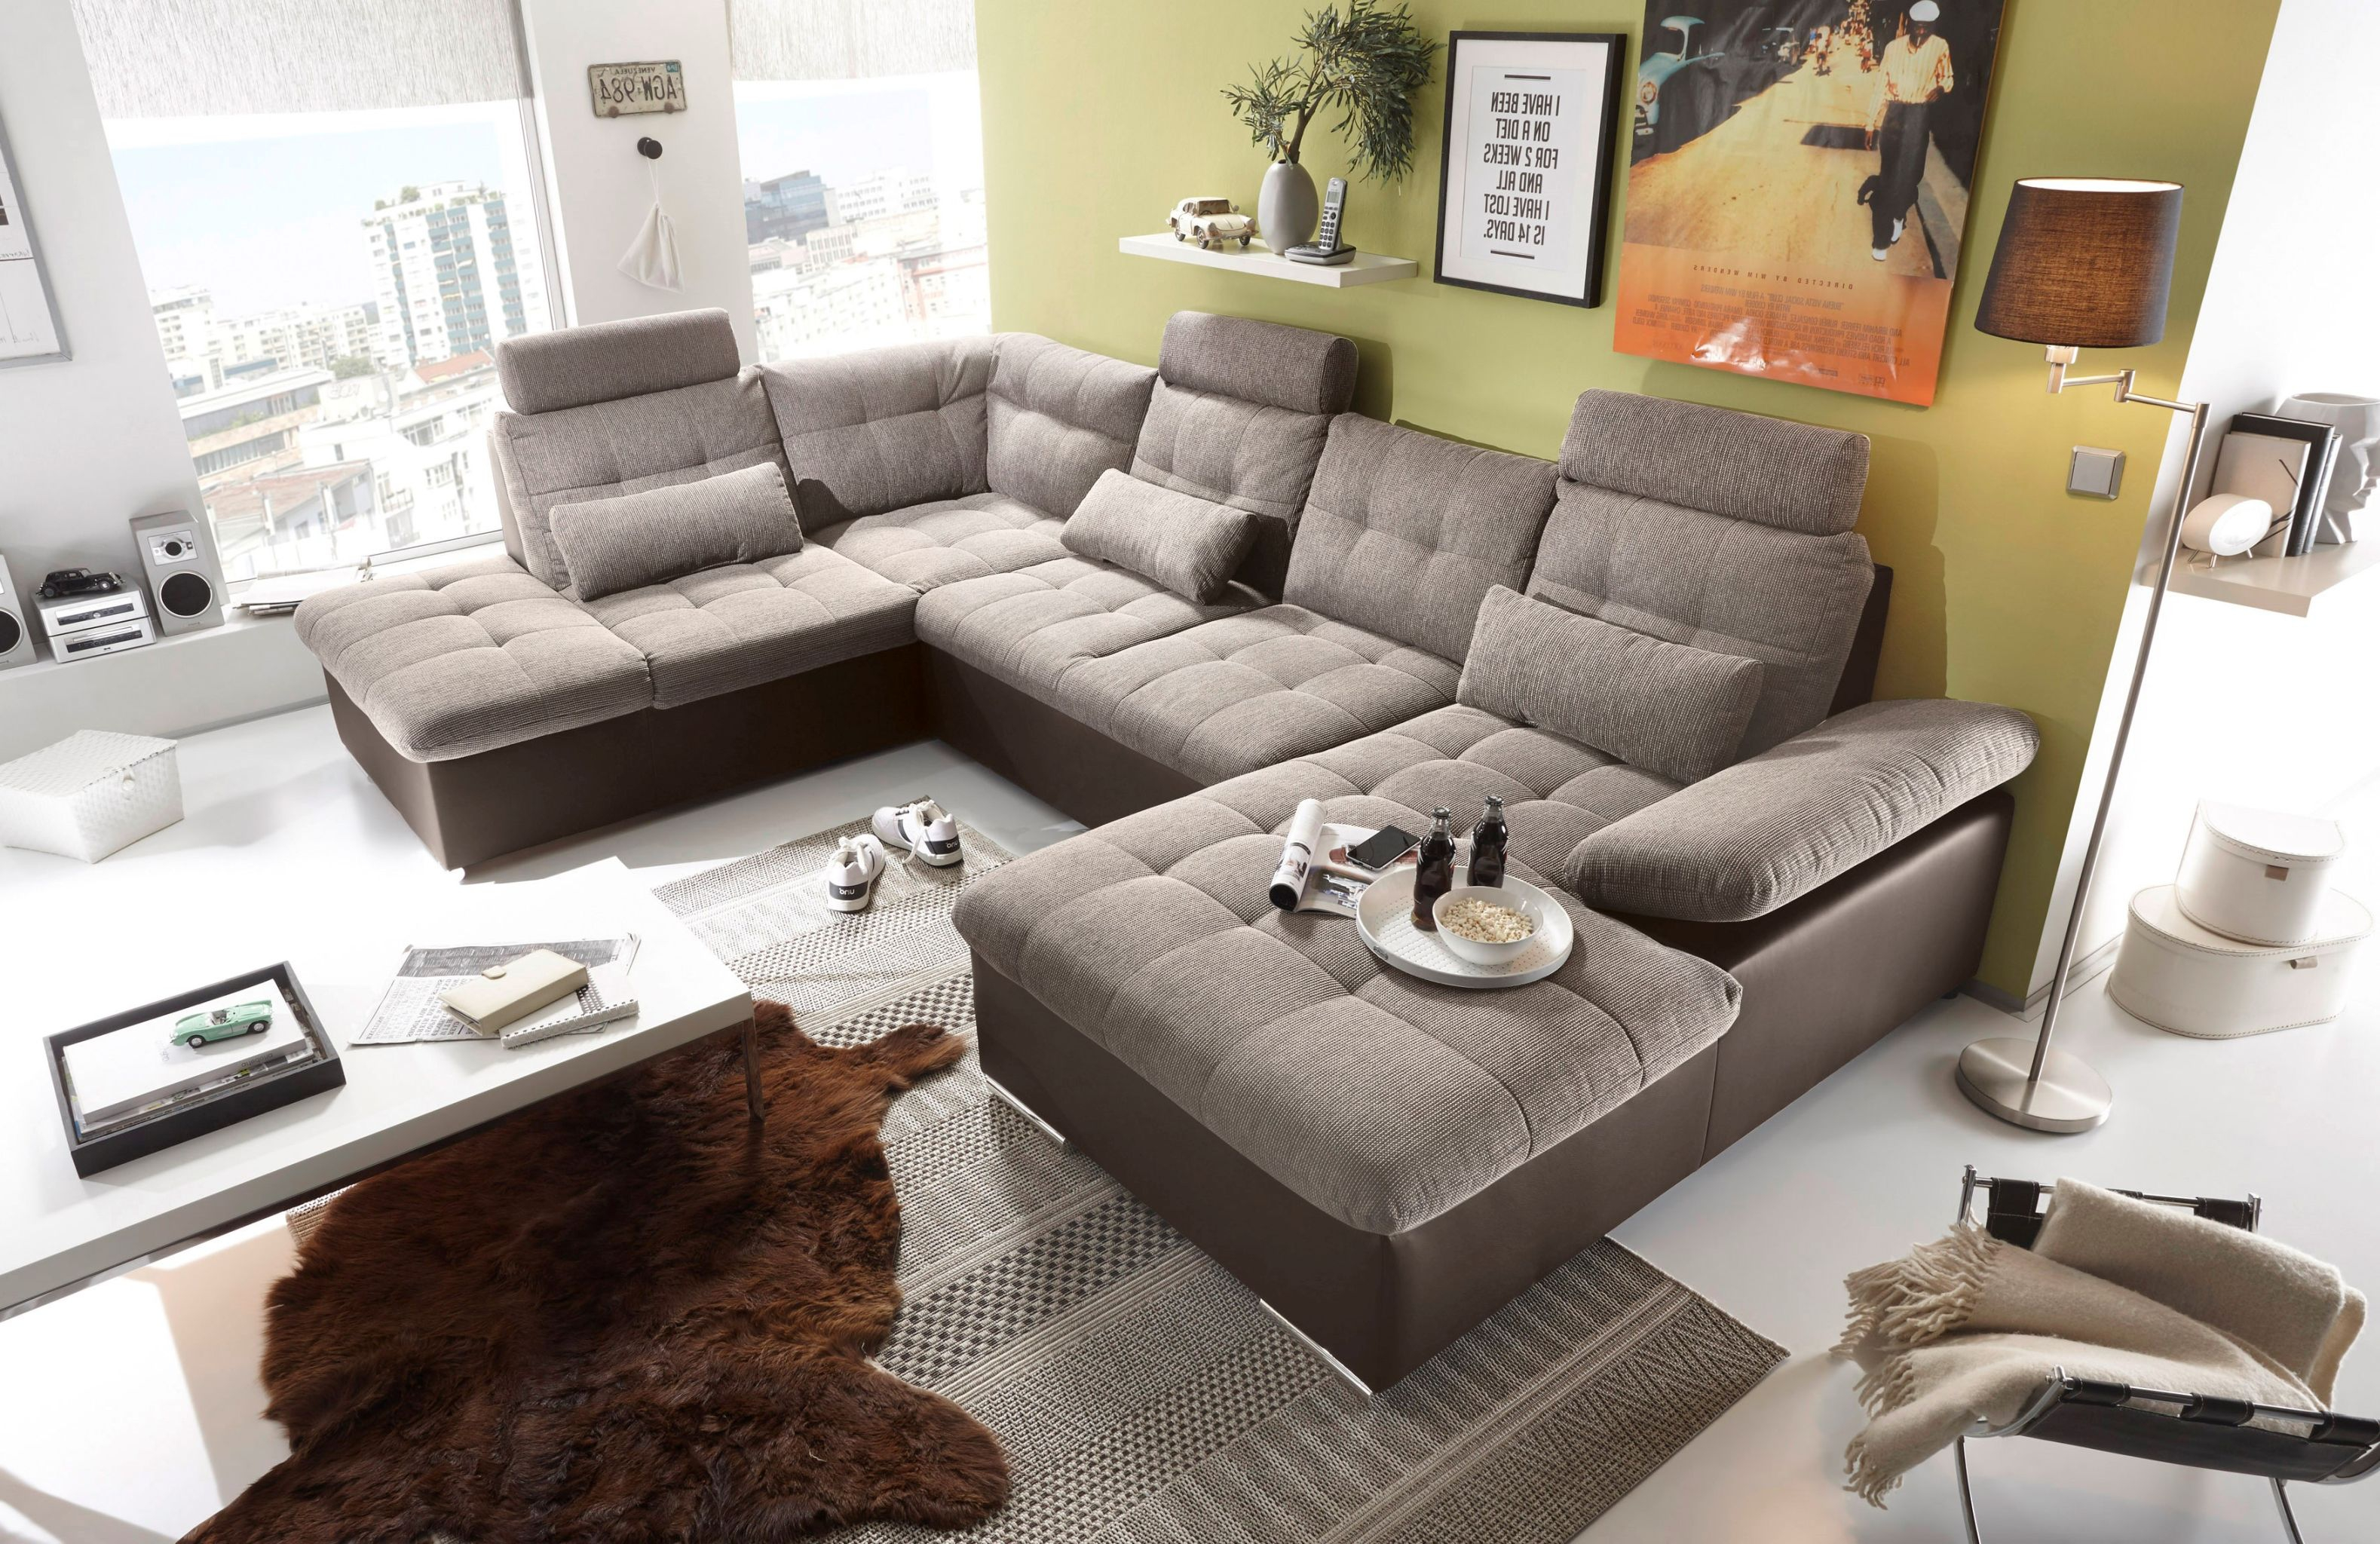 couch wohnlandschaft schlaffunktion schlafsofa braun beige ottomane links ebay. Black Bedroom Furniture Sets. Home Design Ideas